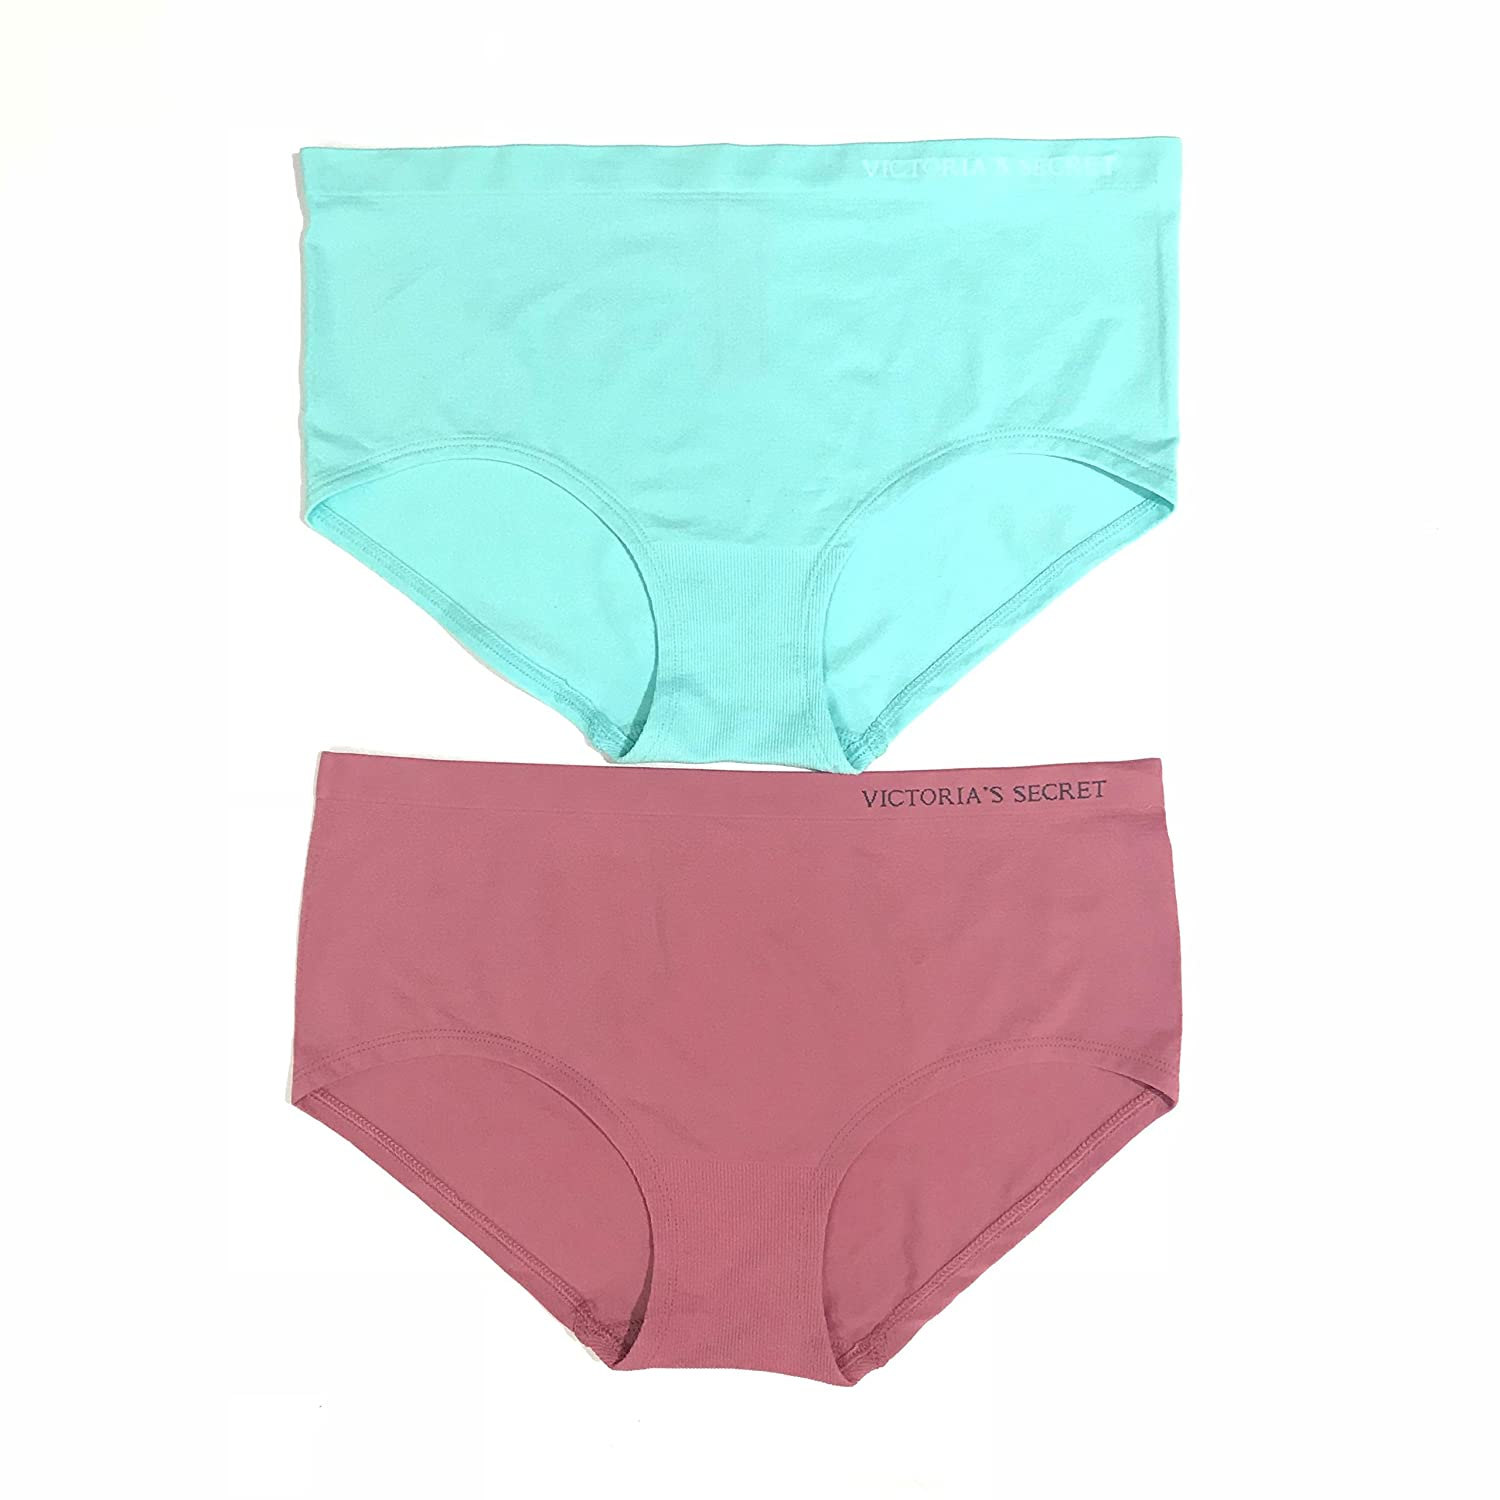 5c07be74d246 Victoria's Secret Hiphugger Hipster Soft Panty Set 2pc Large at ...